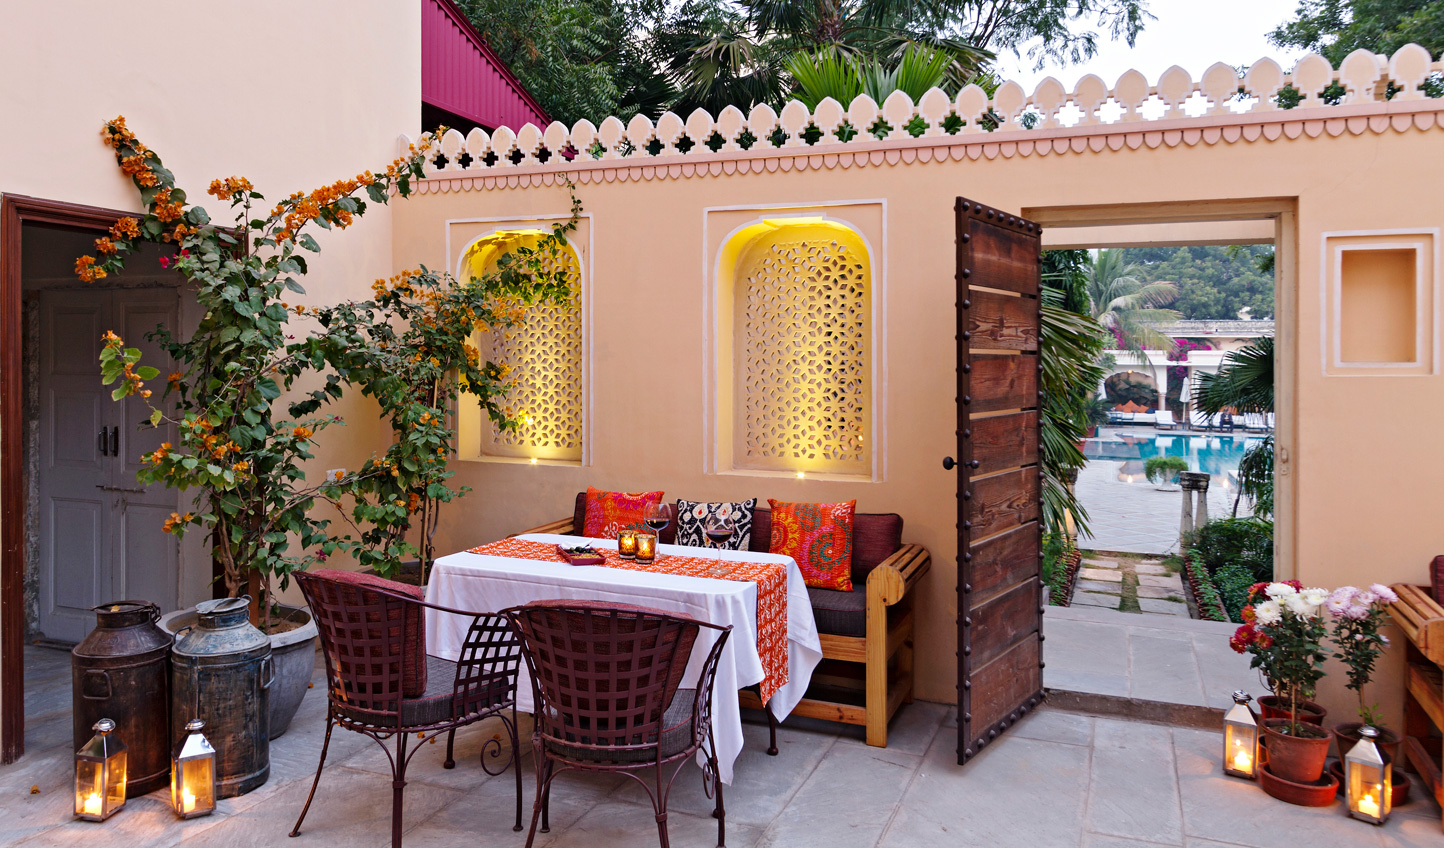 Dine out in the warmth of an evening in Jaipur